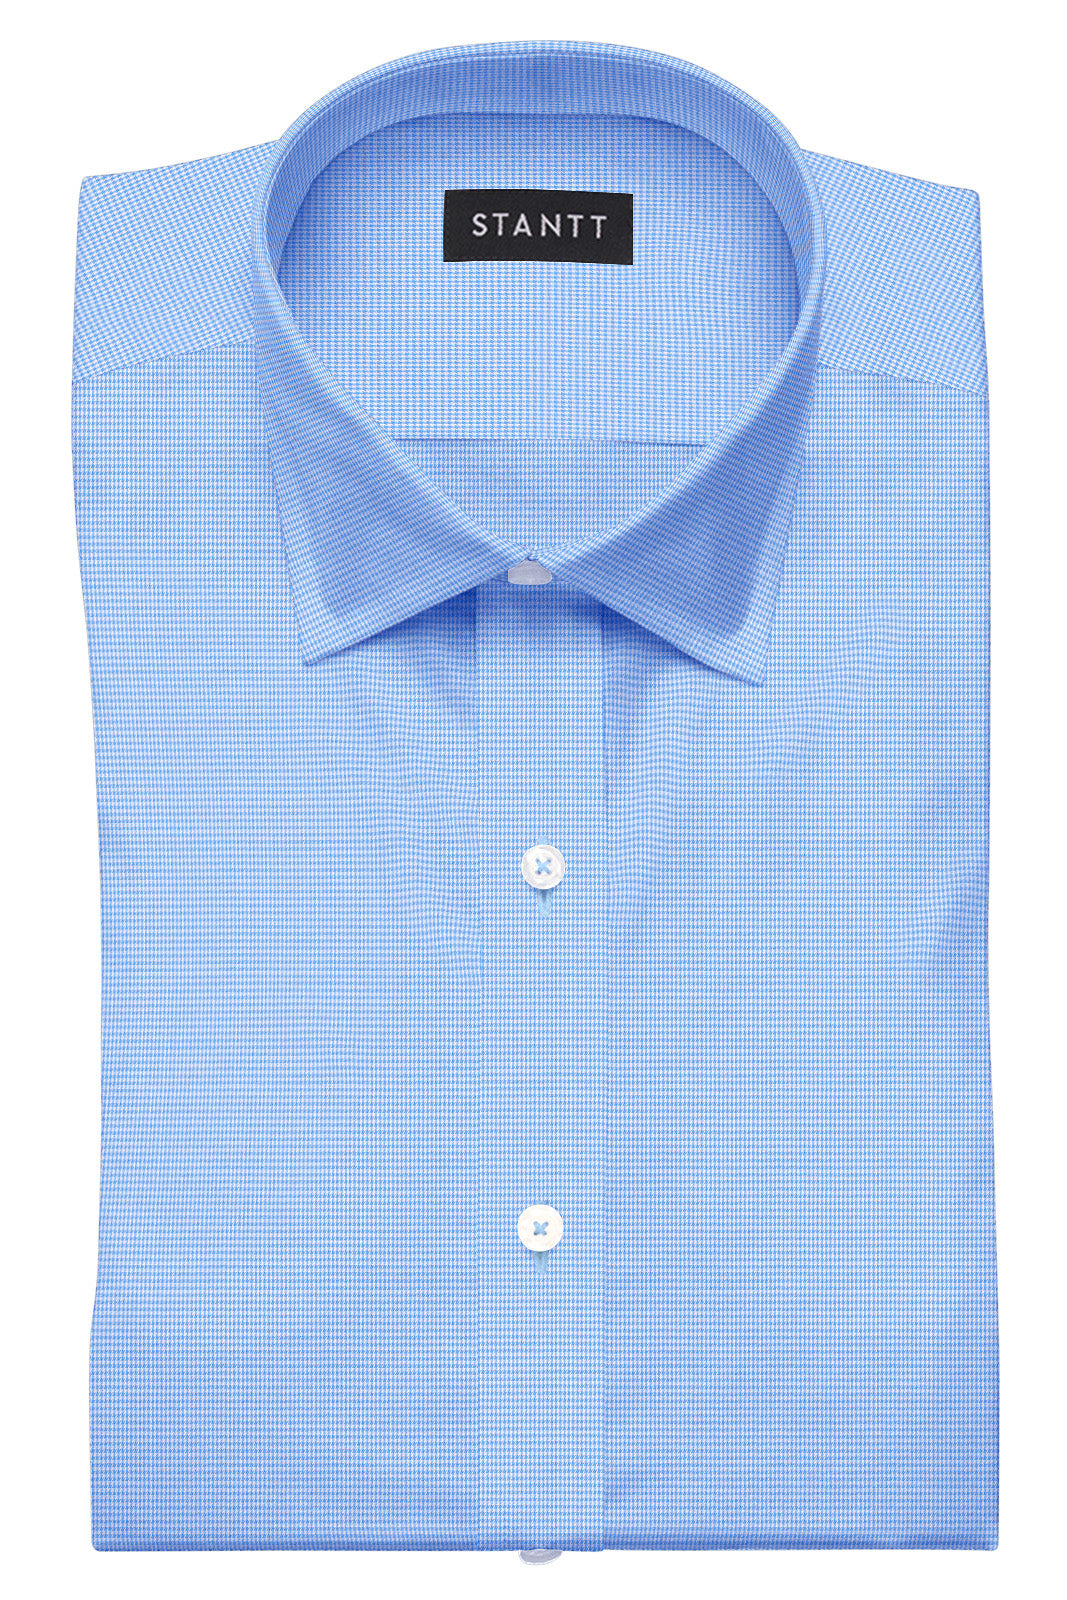 Wrinkle-Resistant French Blue Houndstooth: Semi-Spread Collar, French Cuff